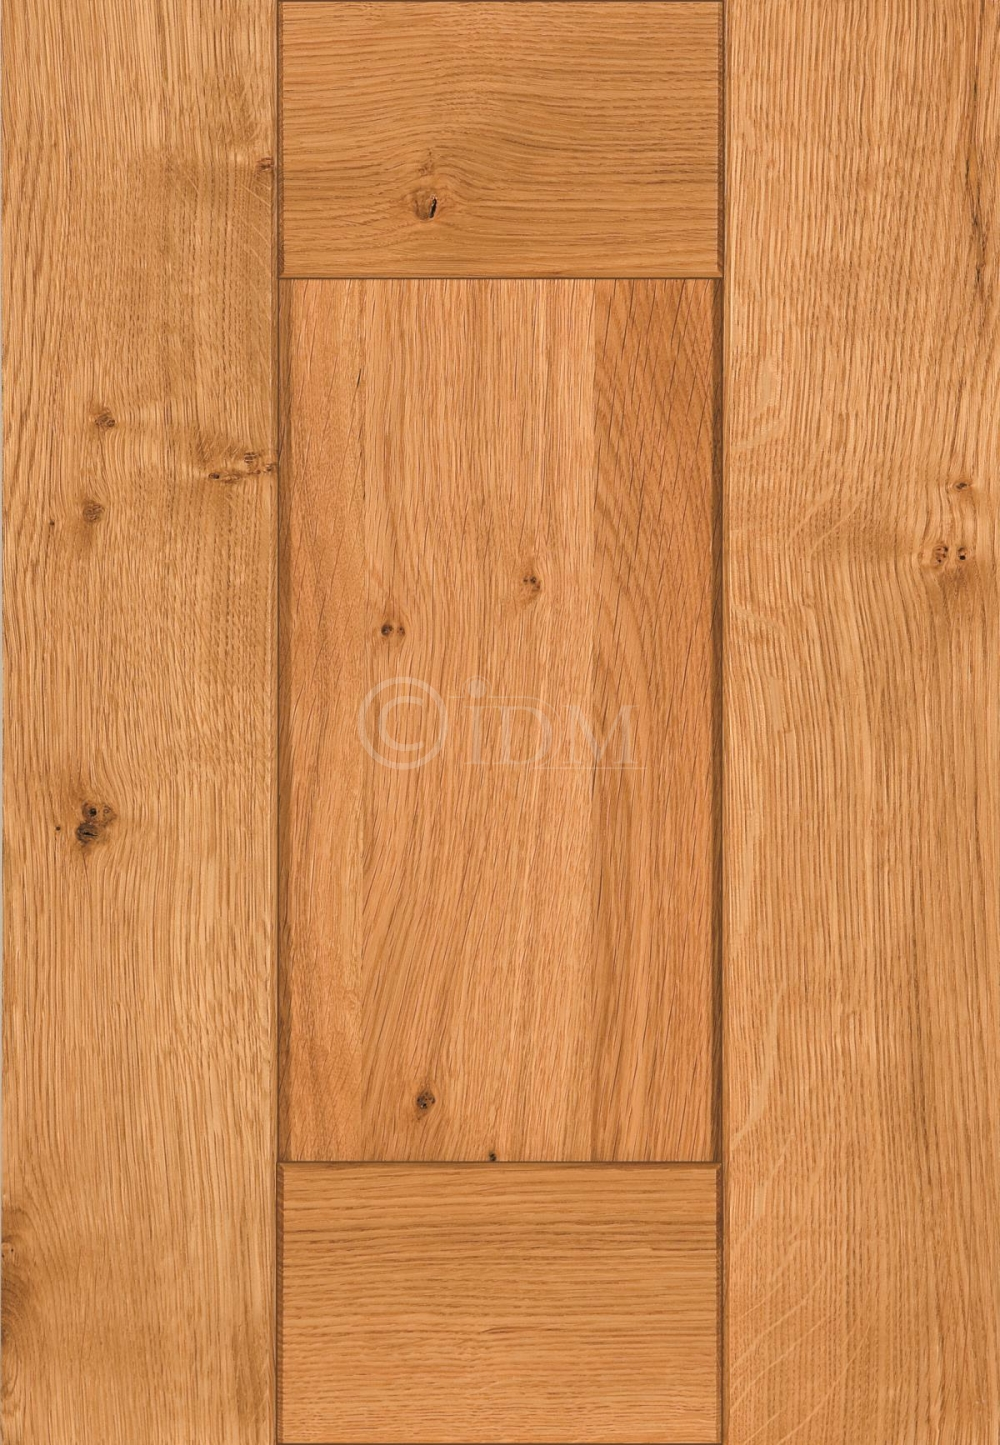 Irelands Largest Range Of 100 Solid Wood Cabinet Doors Solid Wood